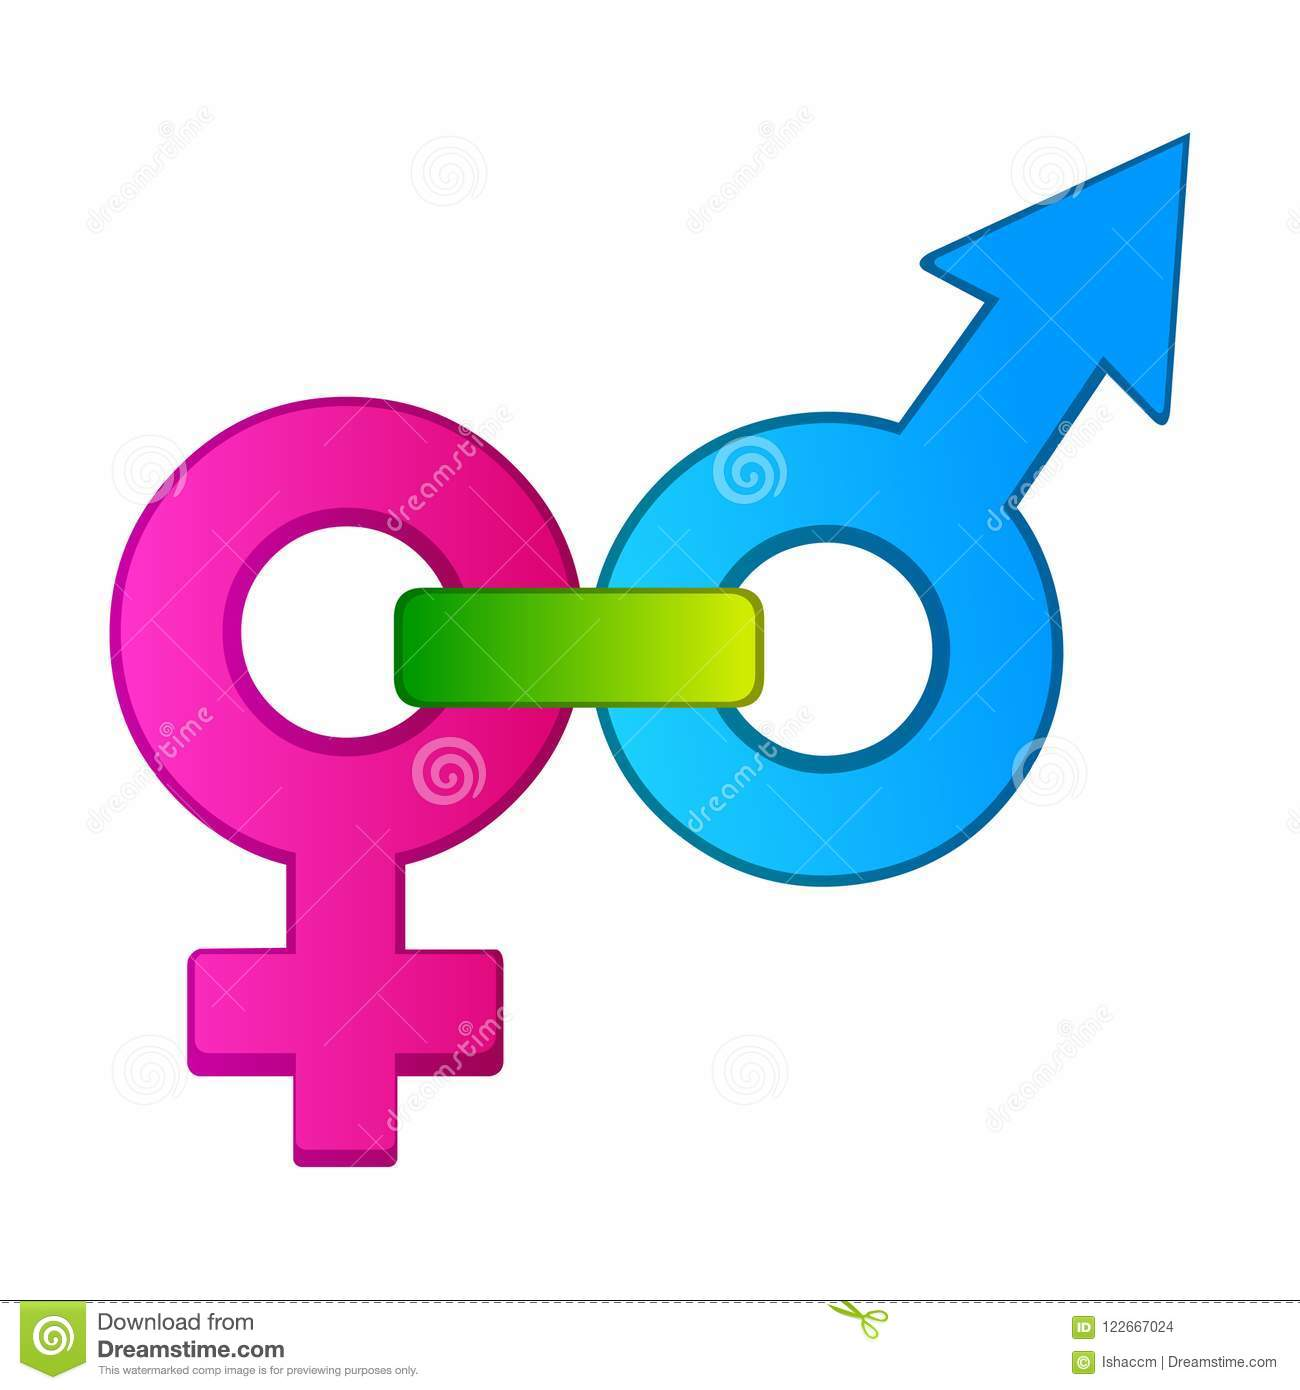 Gender Symbols Le And Female Icons Stock Vector Illustration